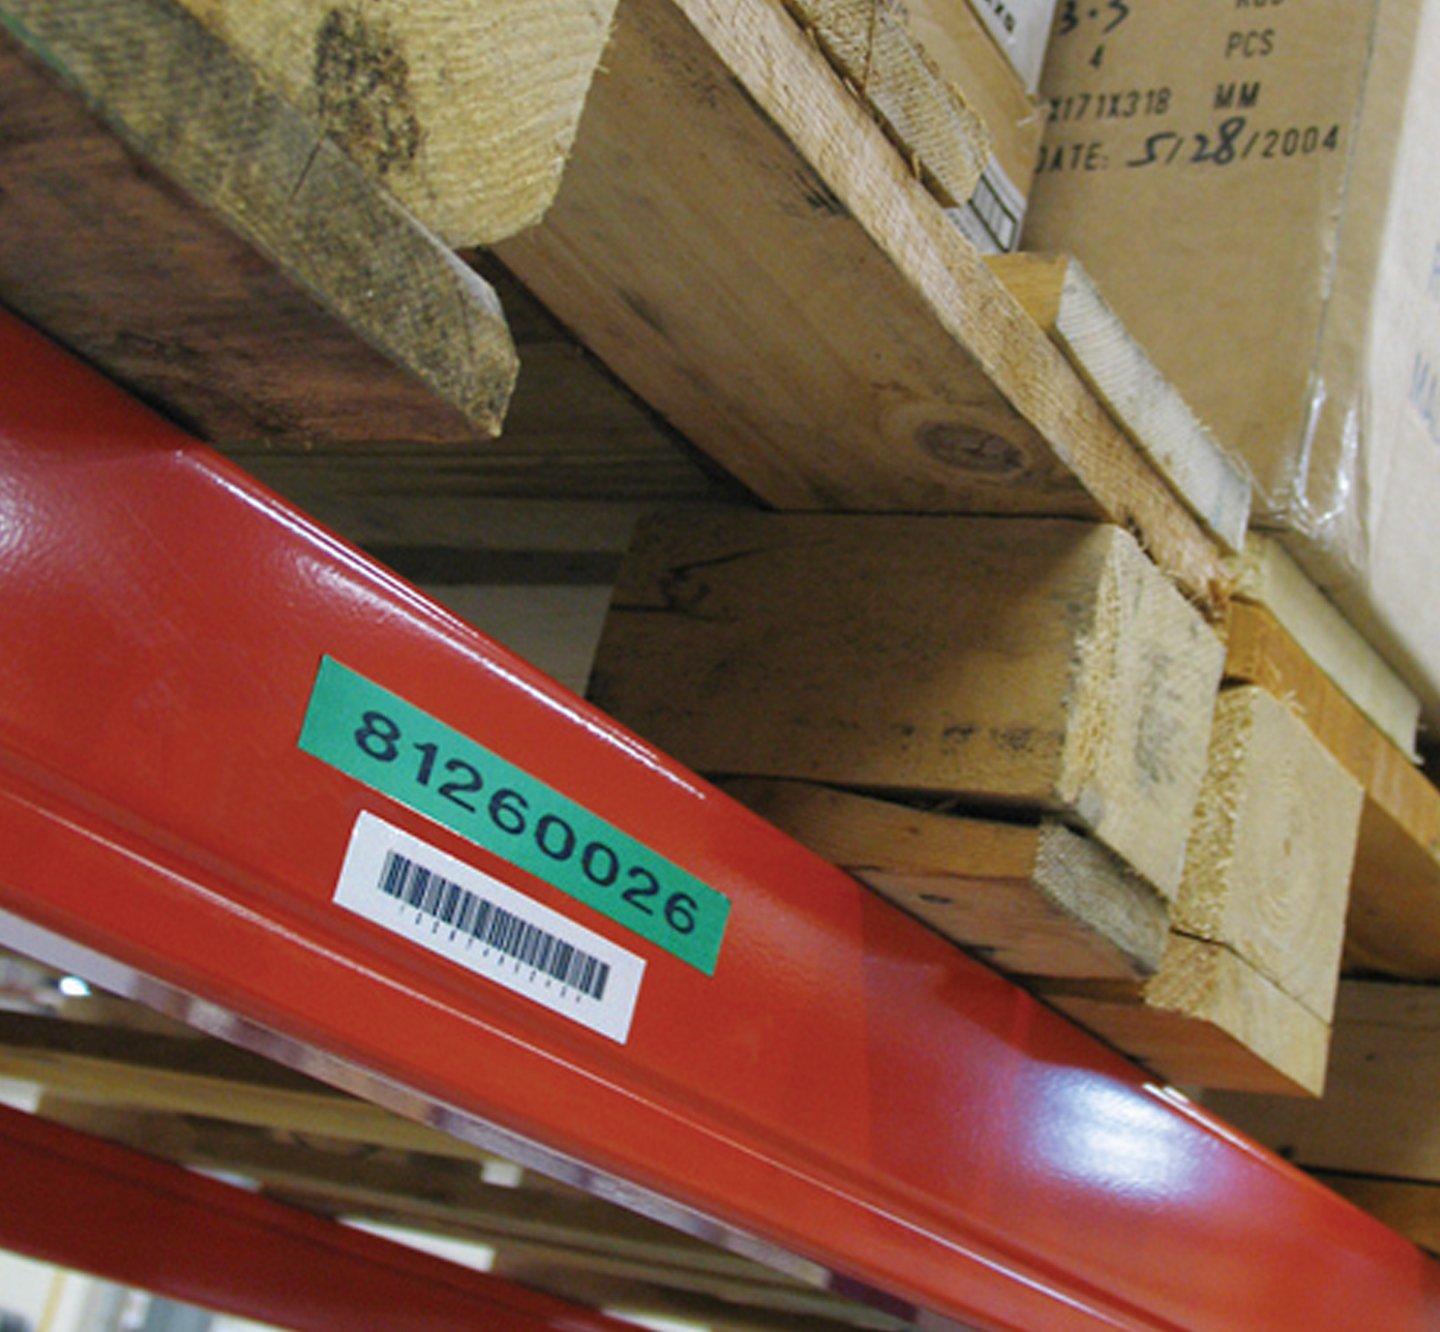 Wooden pallets on a warehouse shelf with a barcode label.